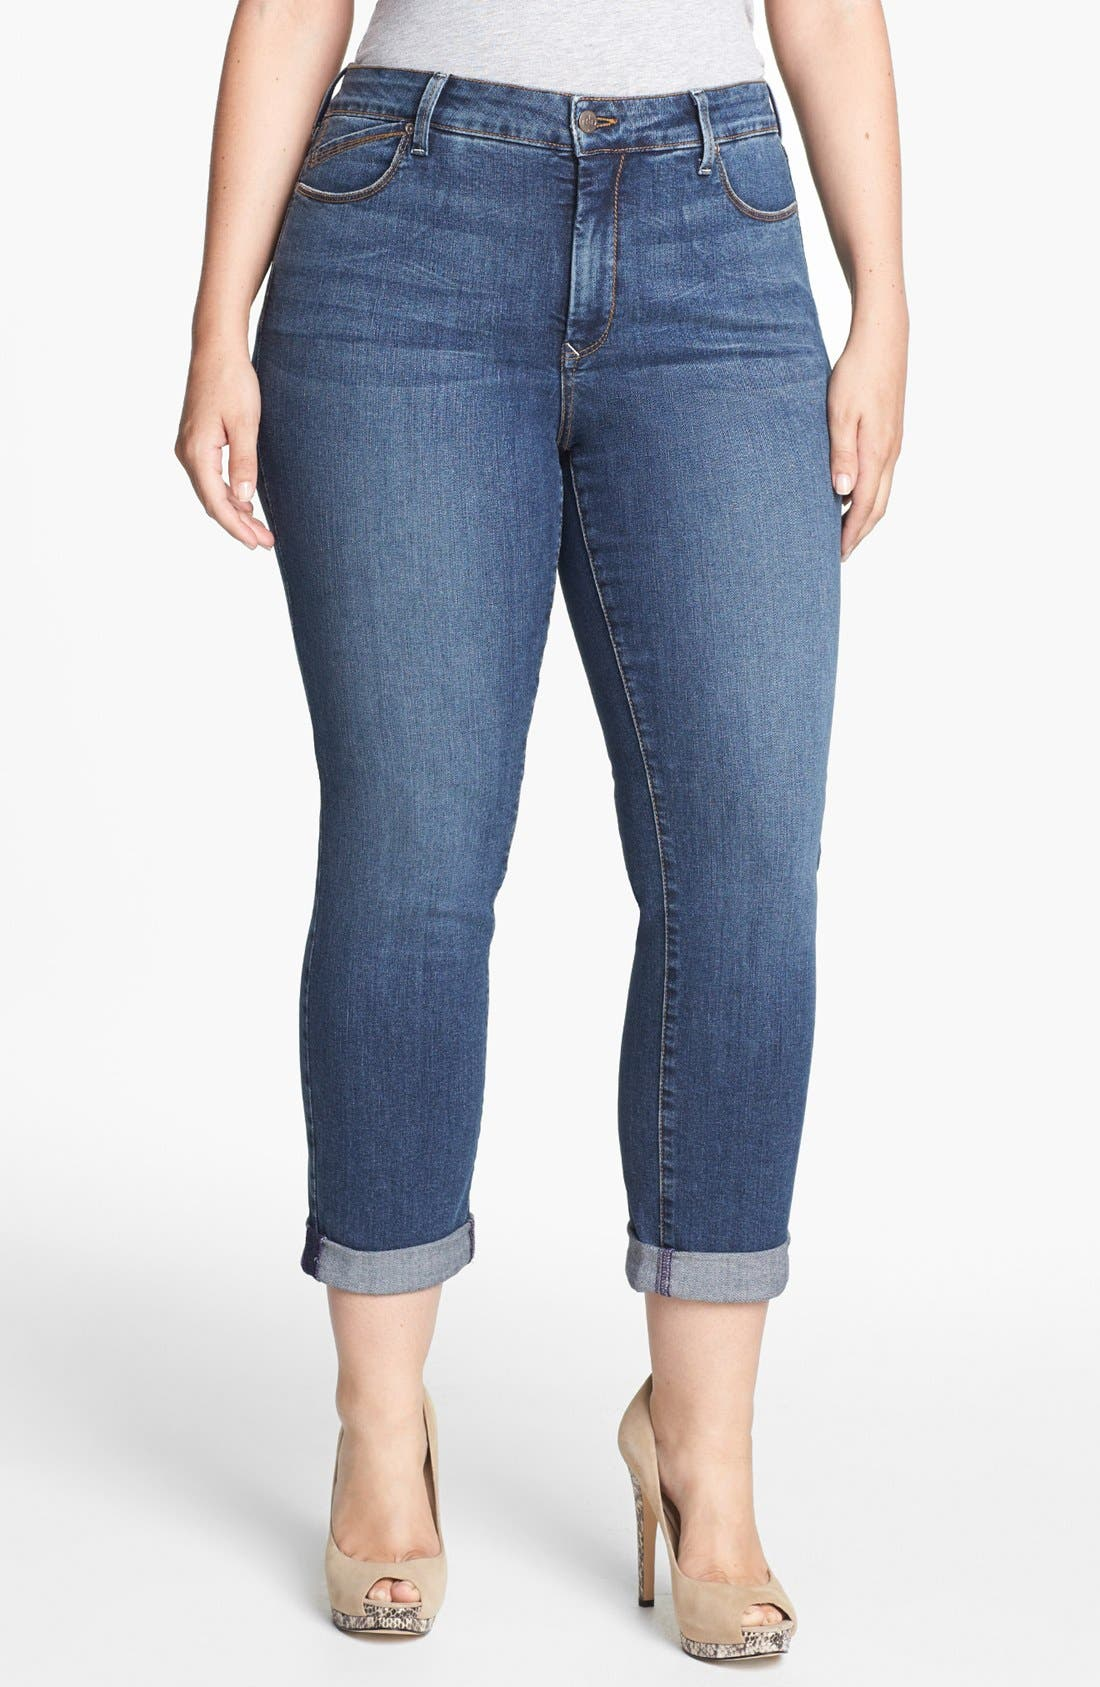 Main Image - NYDJ 'Tanya' Stretch Boyfriend Jeans (Lockport) (Plus Size)